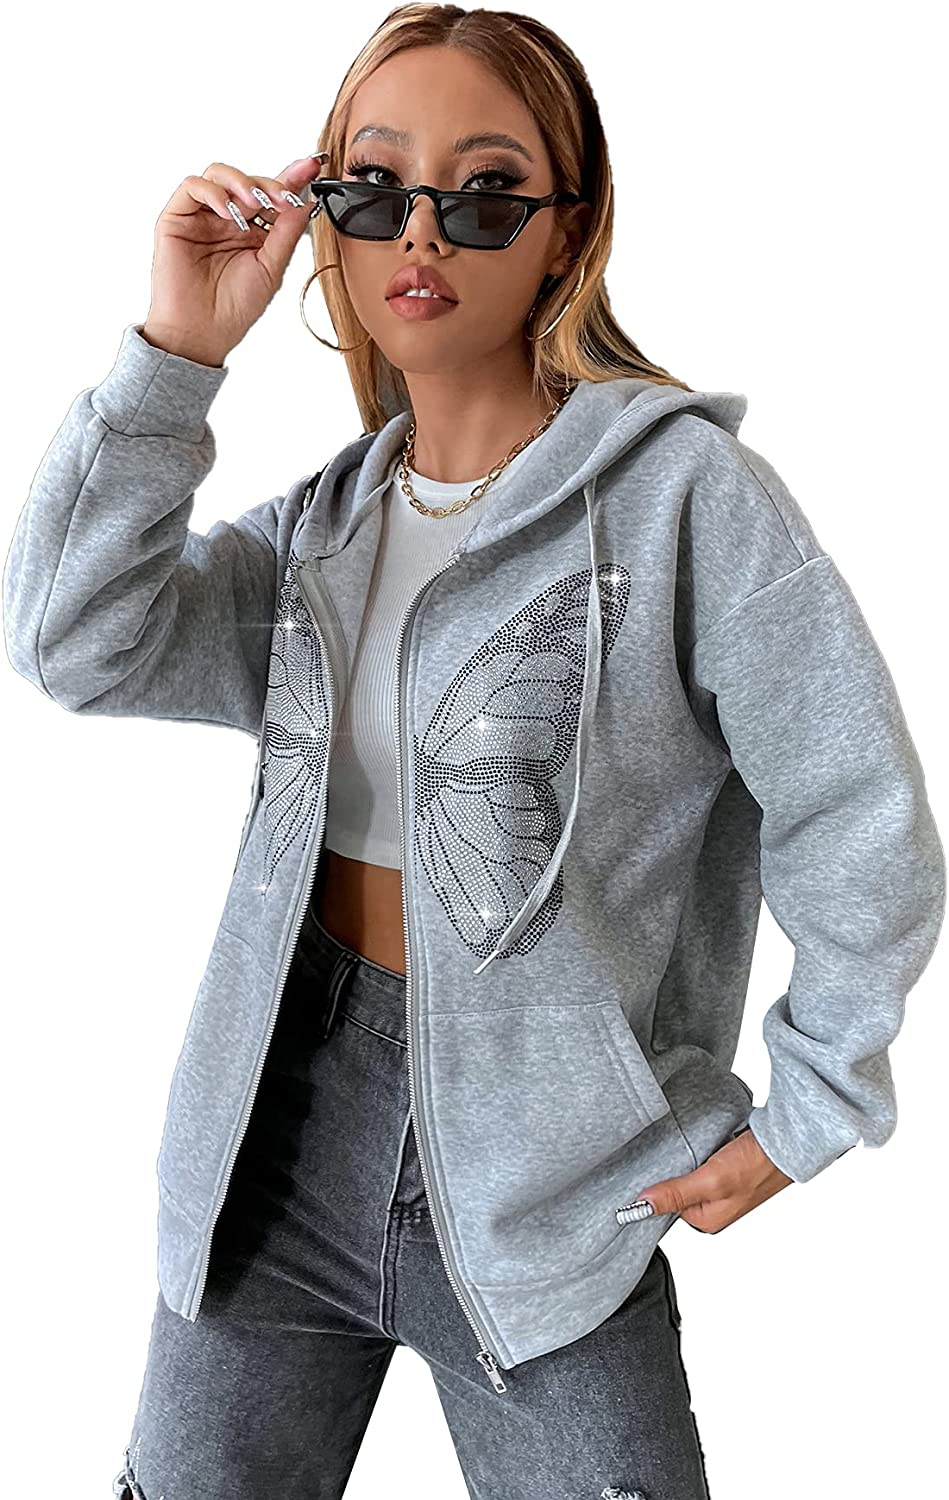 MAKEMECHIC Women's Butterfly Print Drop Shoulder Zip Up Hoodie with Pockets